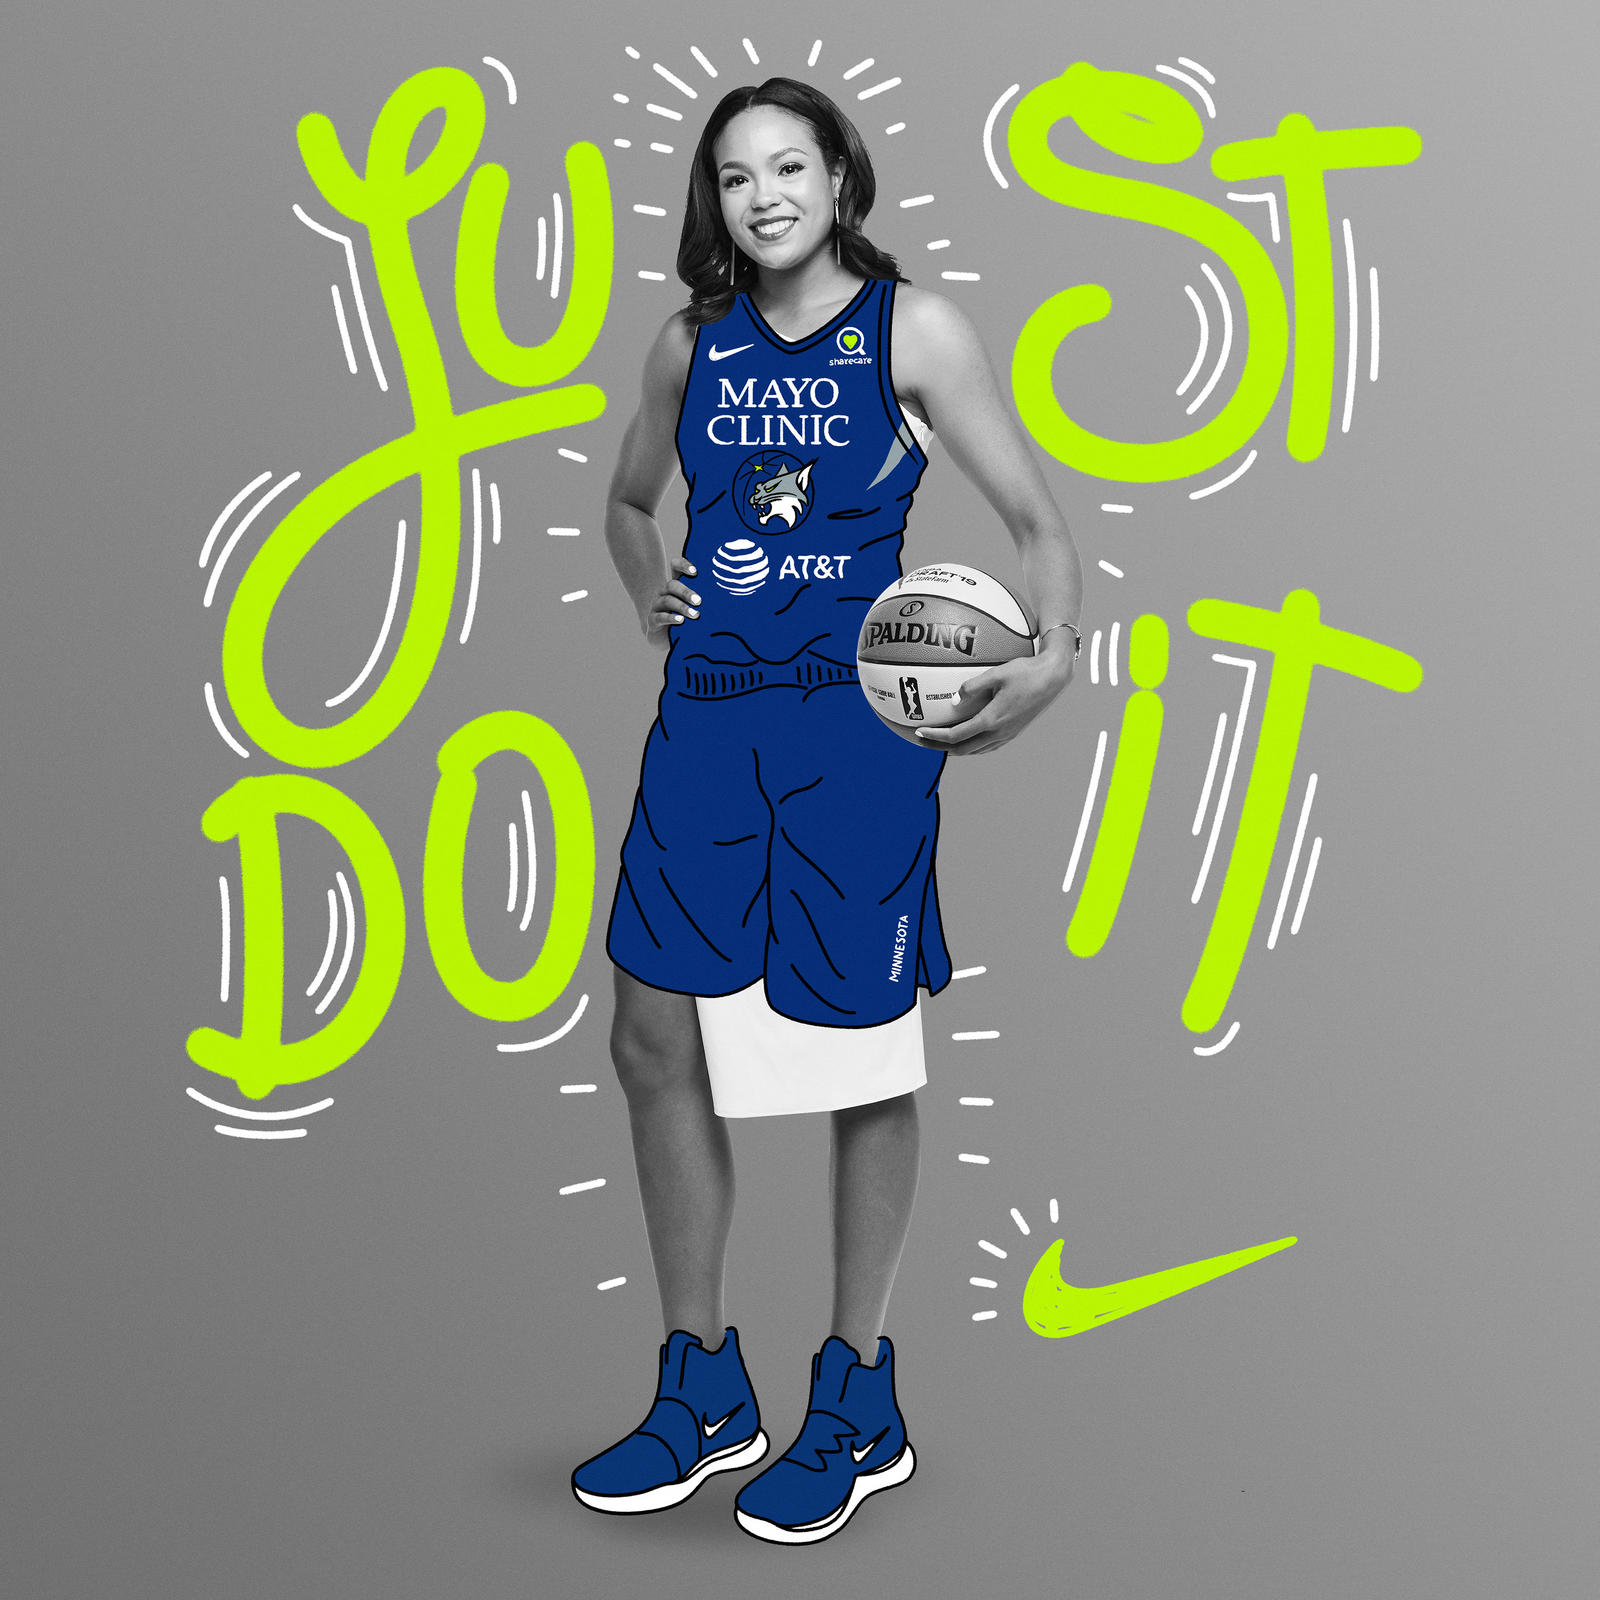 The 6'2″ forward ended her career at UConn as only the fifth Husky to join 2,000-point / 1,000 rebound club, joining Nike athletes Breanna Stewart and Tina Charles. She's excited and honored to join the excellence of the Nike family.